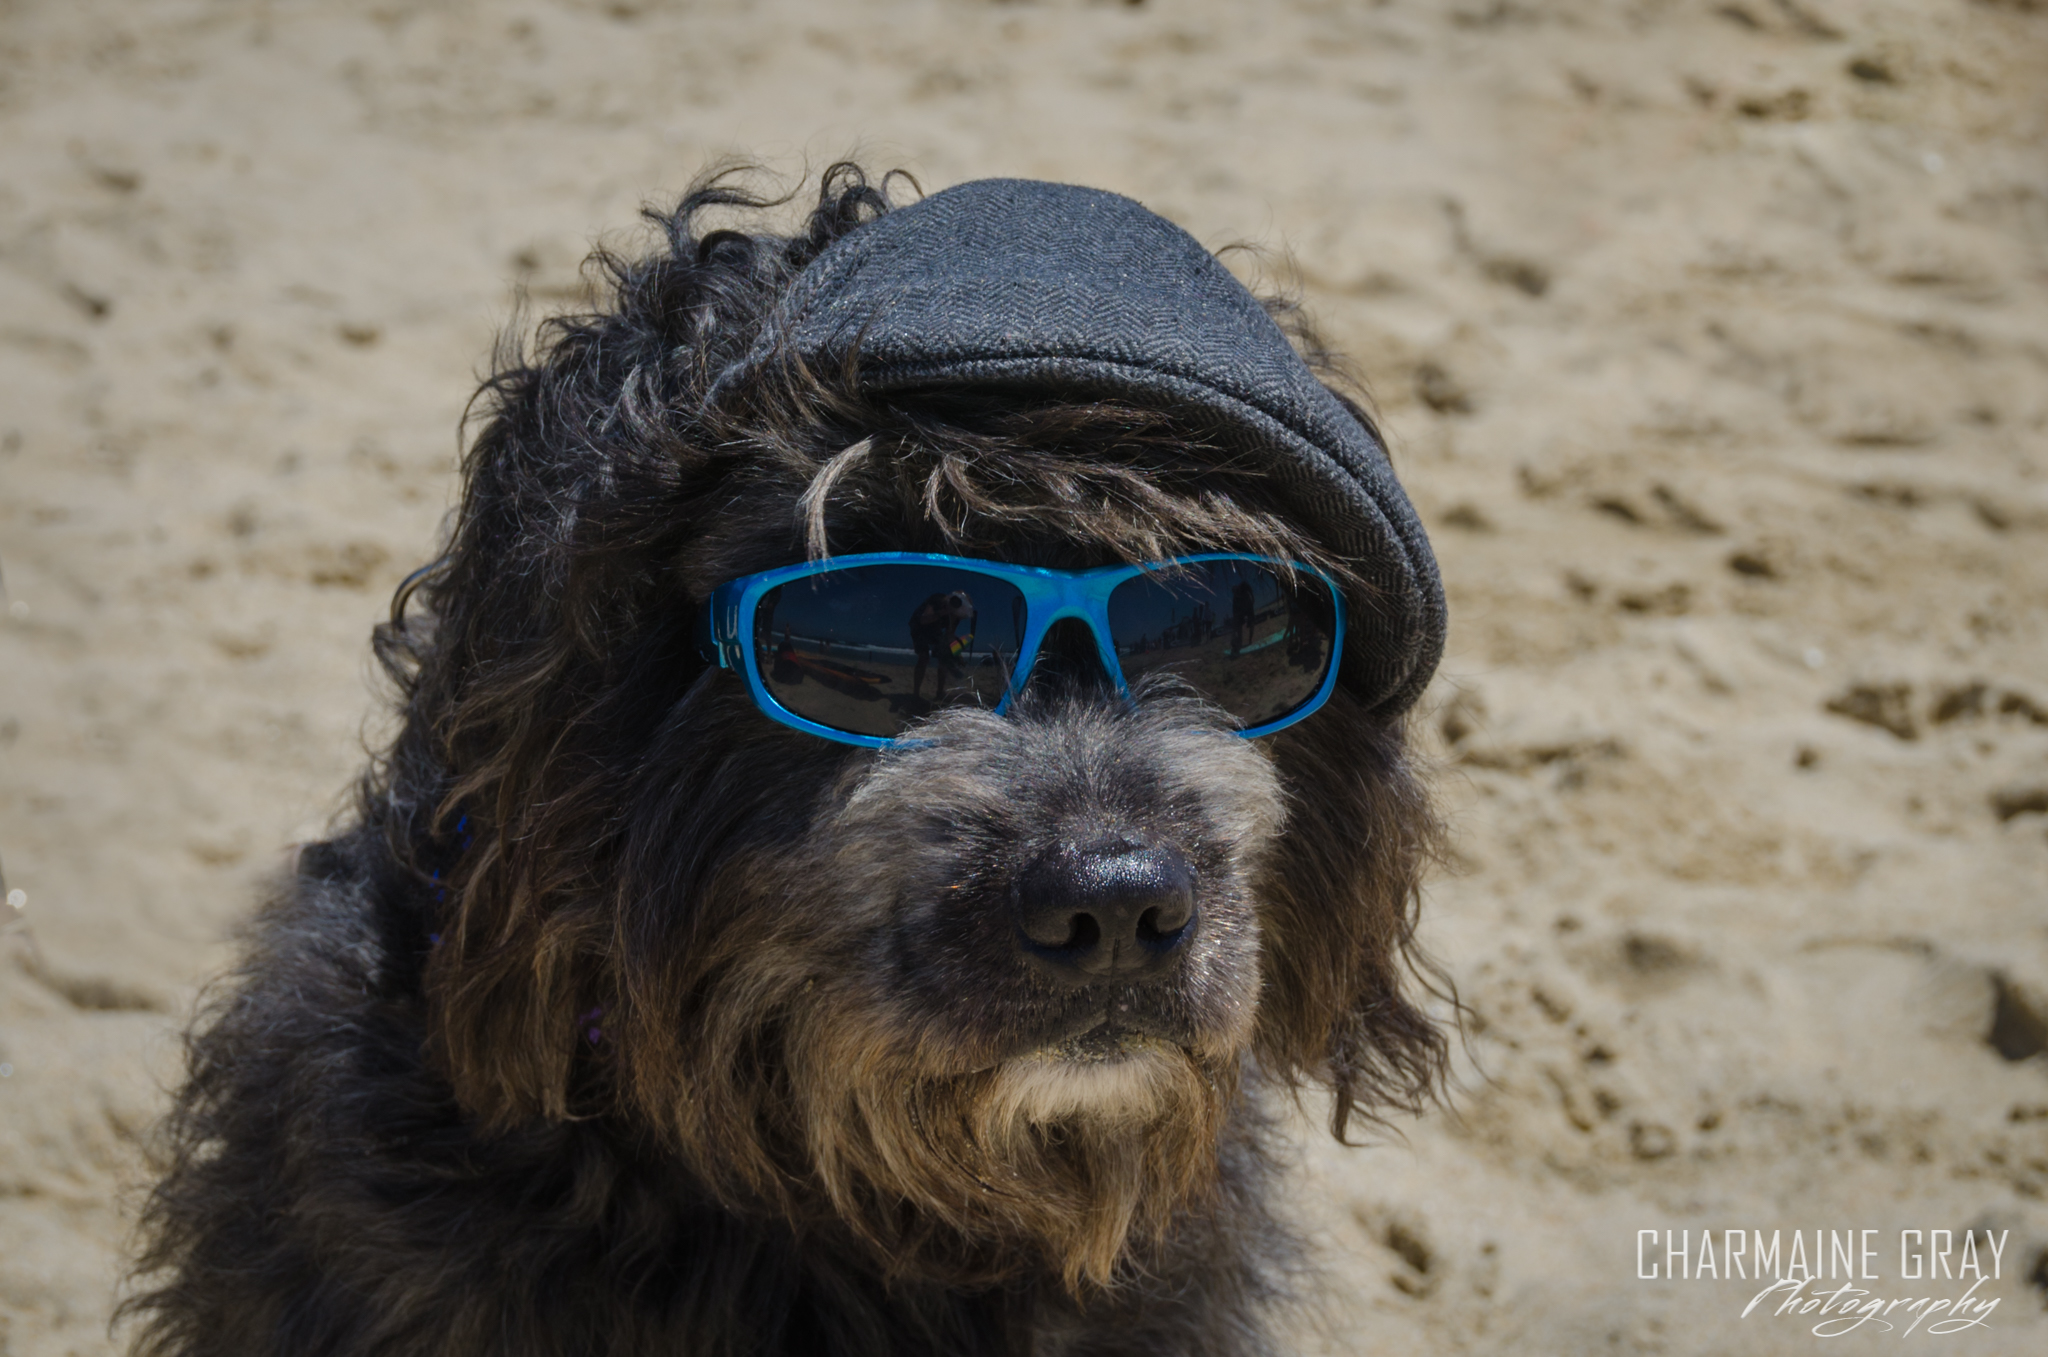 pet photographer, pet photography, pet portrait, pet, animal, charmaine gray photography, charmaine gray pet photography, san diego,dog,canine,california,surf,surfing,doodle, brody